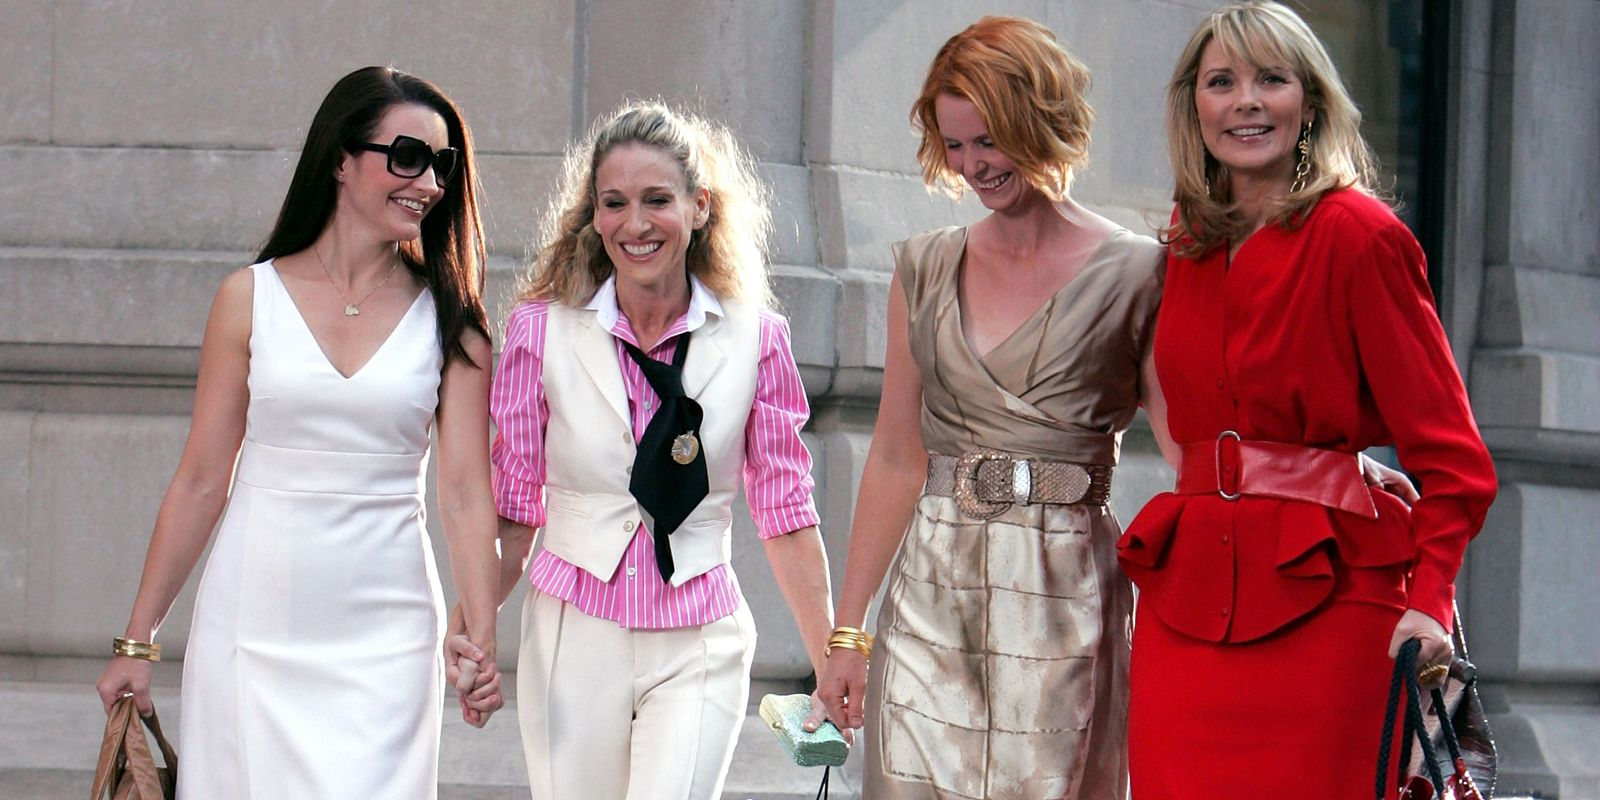 """Kristin Davis, Sarah Jessica Parker, Cynthia Nixon and Kim Cattrall on Location for """"Sex and the City: The Movie"""" - September 21, 2007"""